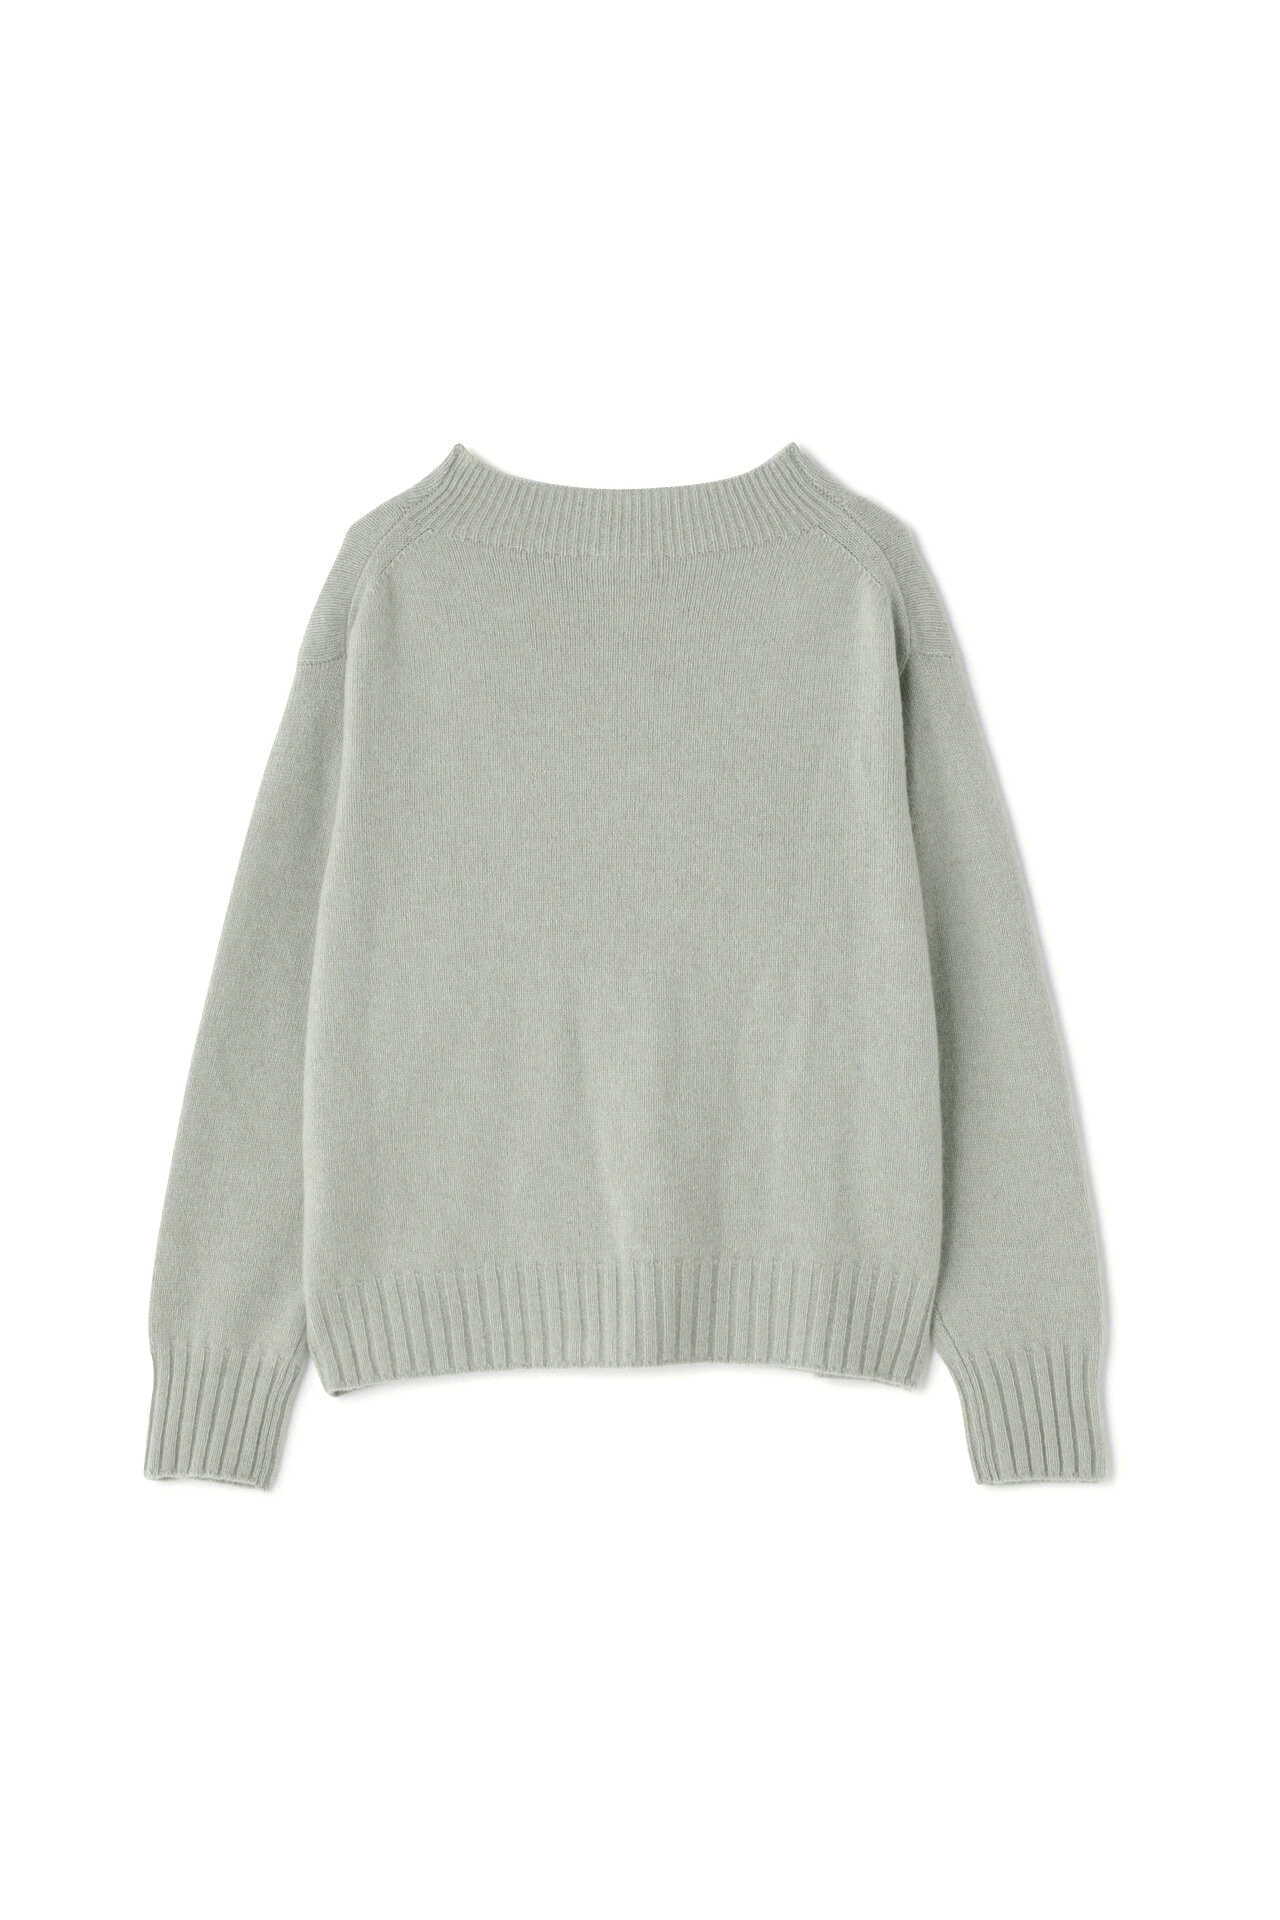 TWISTED CASHMERE WOOL JUMPER11